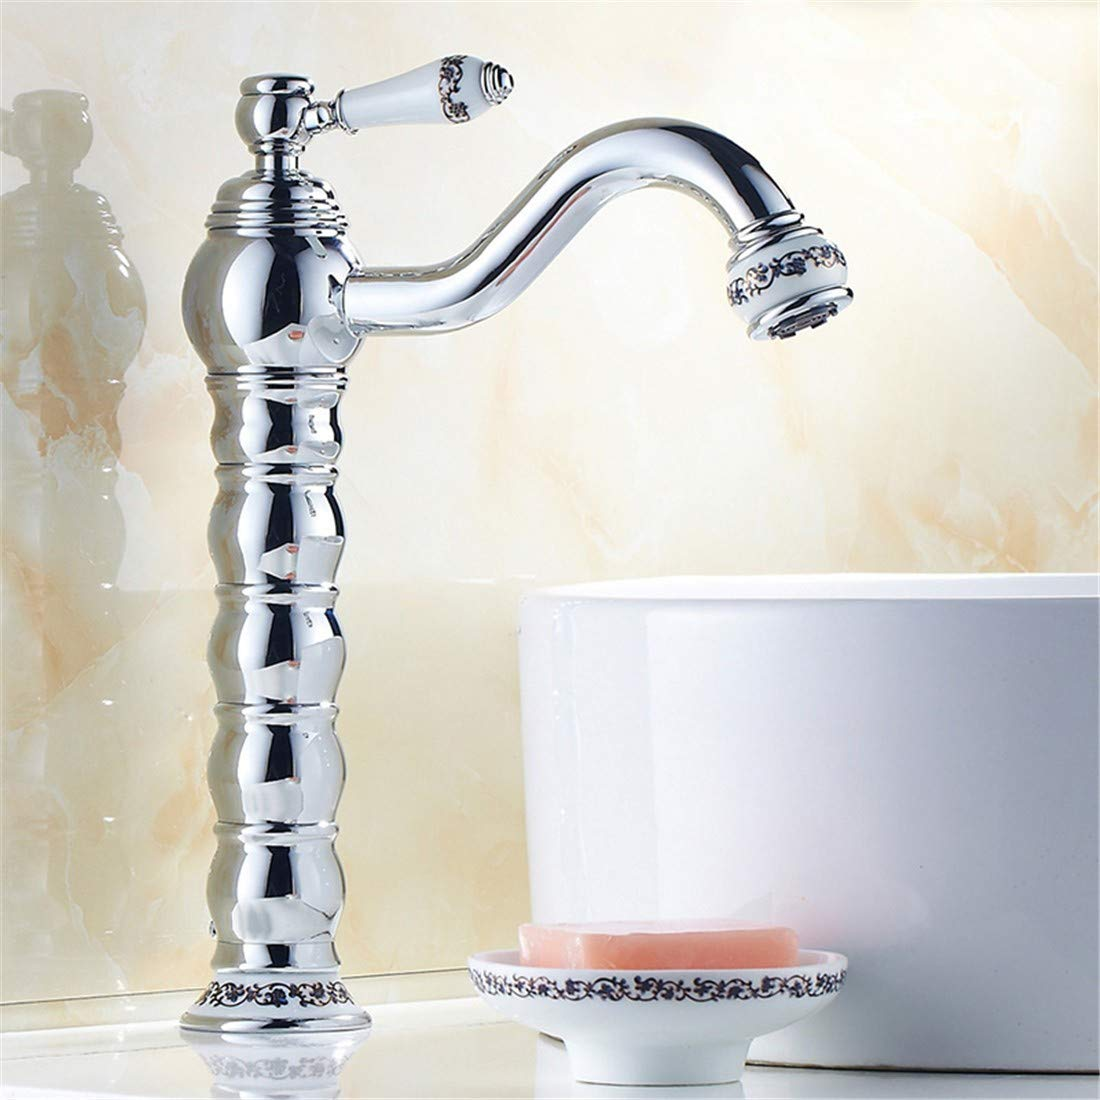 10 LHbox The copper gold faucet hot and cold can redate the European Table Top basin mixer with high bluee enamel gold plated antique fittings, chrome plated standard redation)